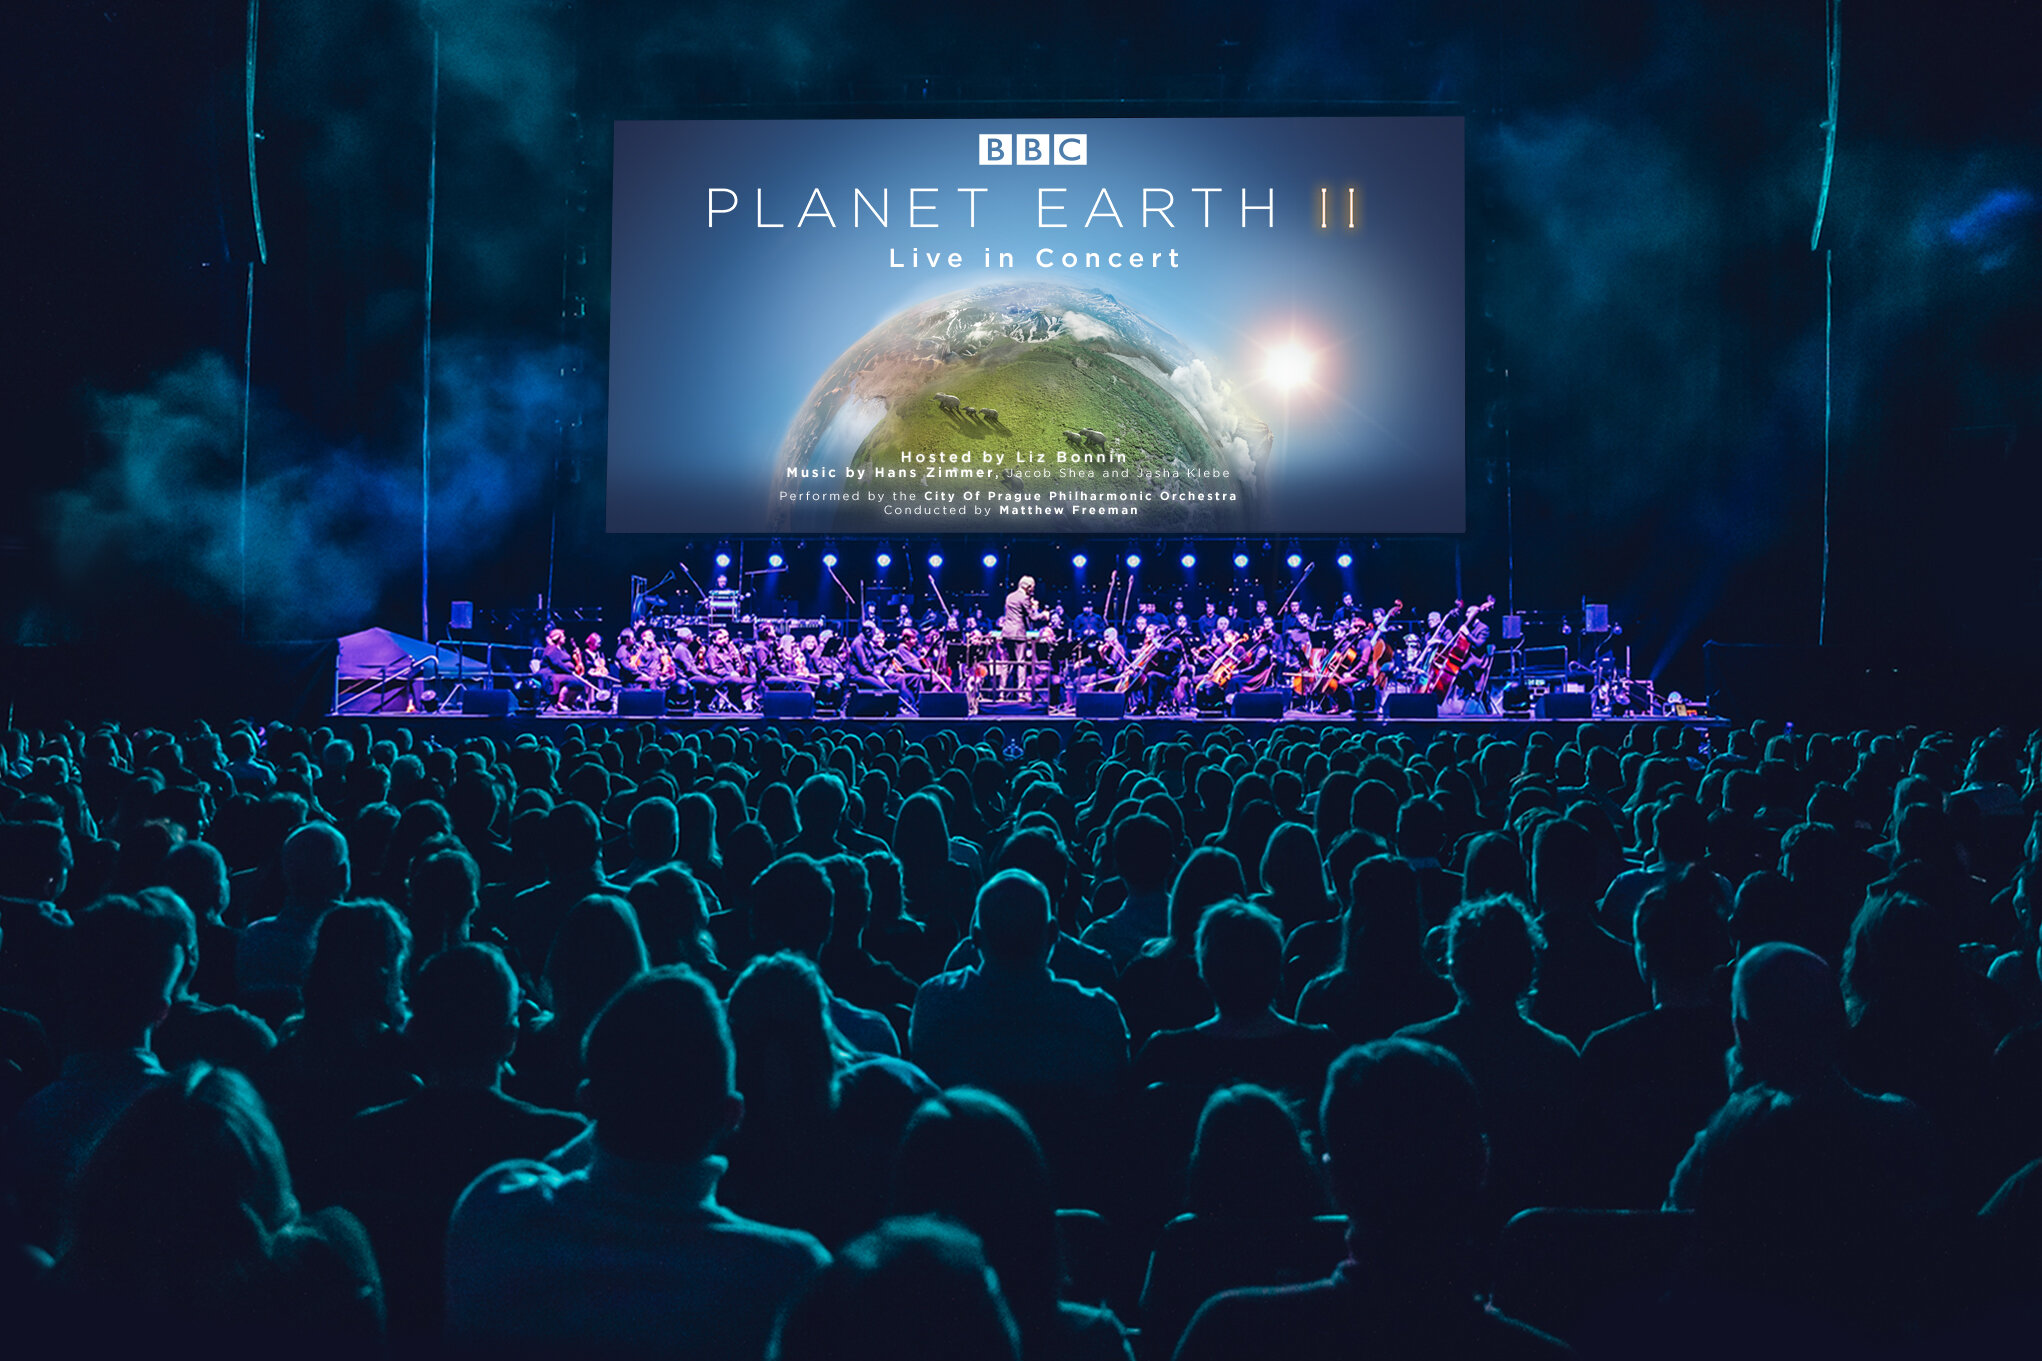 Planet Earth Press Picture Arena 2019 Iconic Poster.jpg